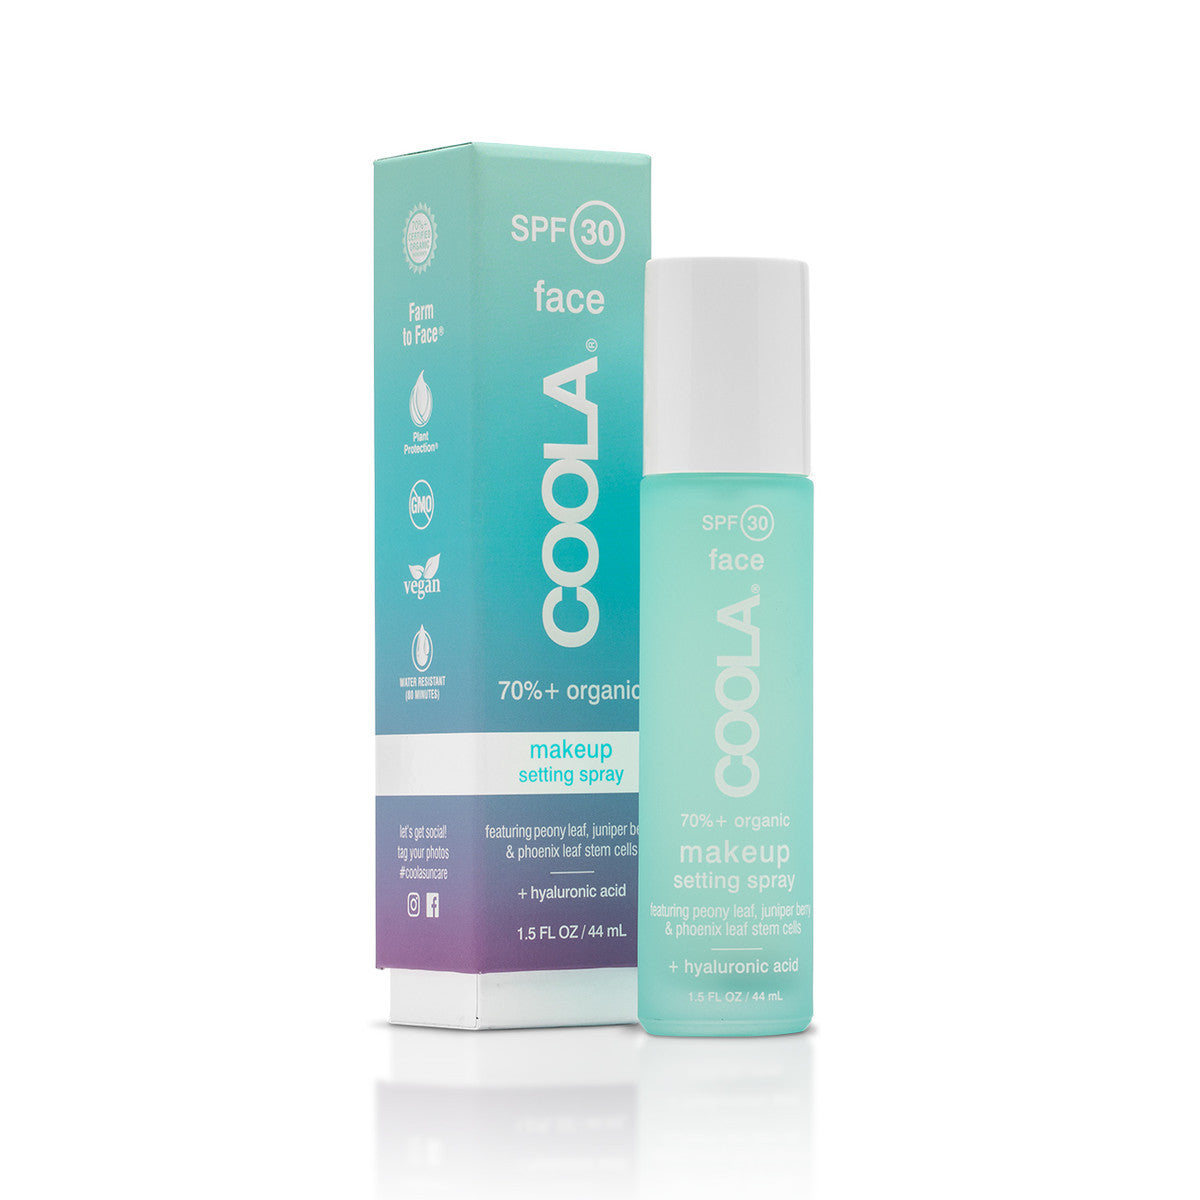 COOLA SPF 30 Makeup Setting Spray | New London Pharmacy